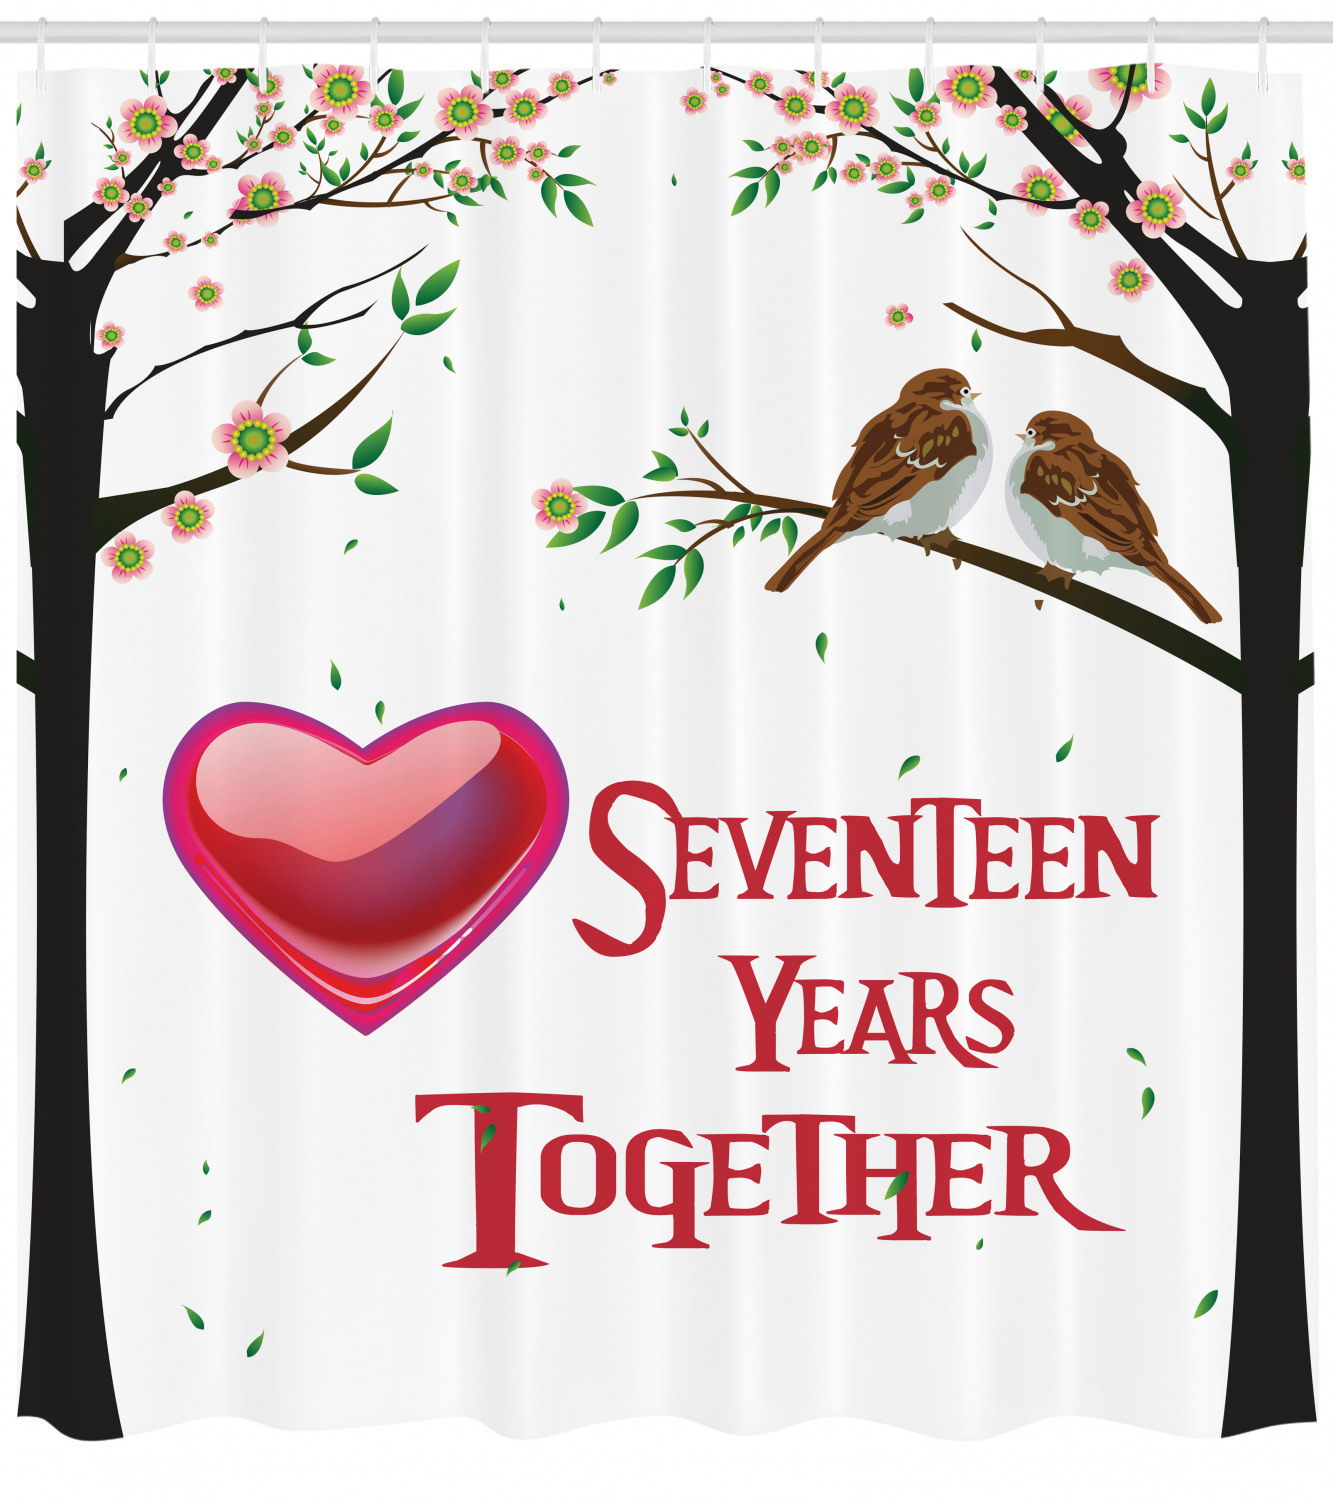 17th Wedding Anniversary Gift Ideas: 17th Wedding Anniversary Gifts For Couple Red Hearts Art